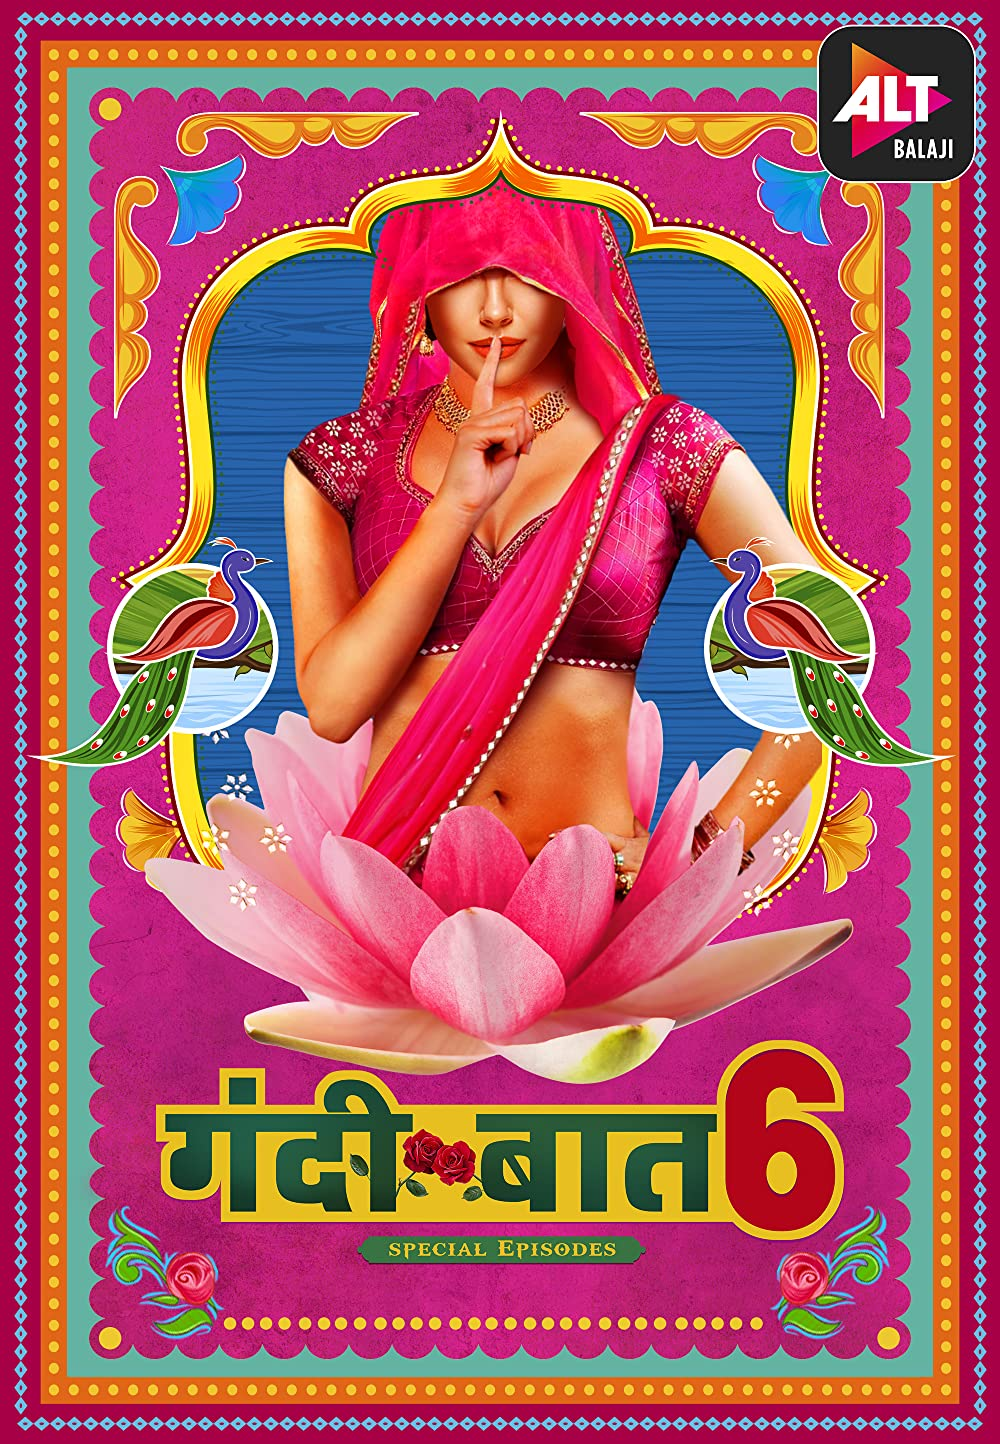 18+ Gandii Baat Season 6 2021 Ep (1-2) Hindi ALTBalaji Original Web Series 720p HDRip 800MB Download